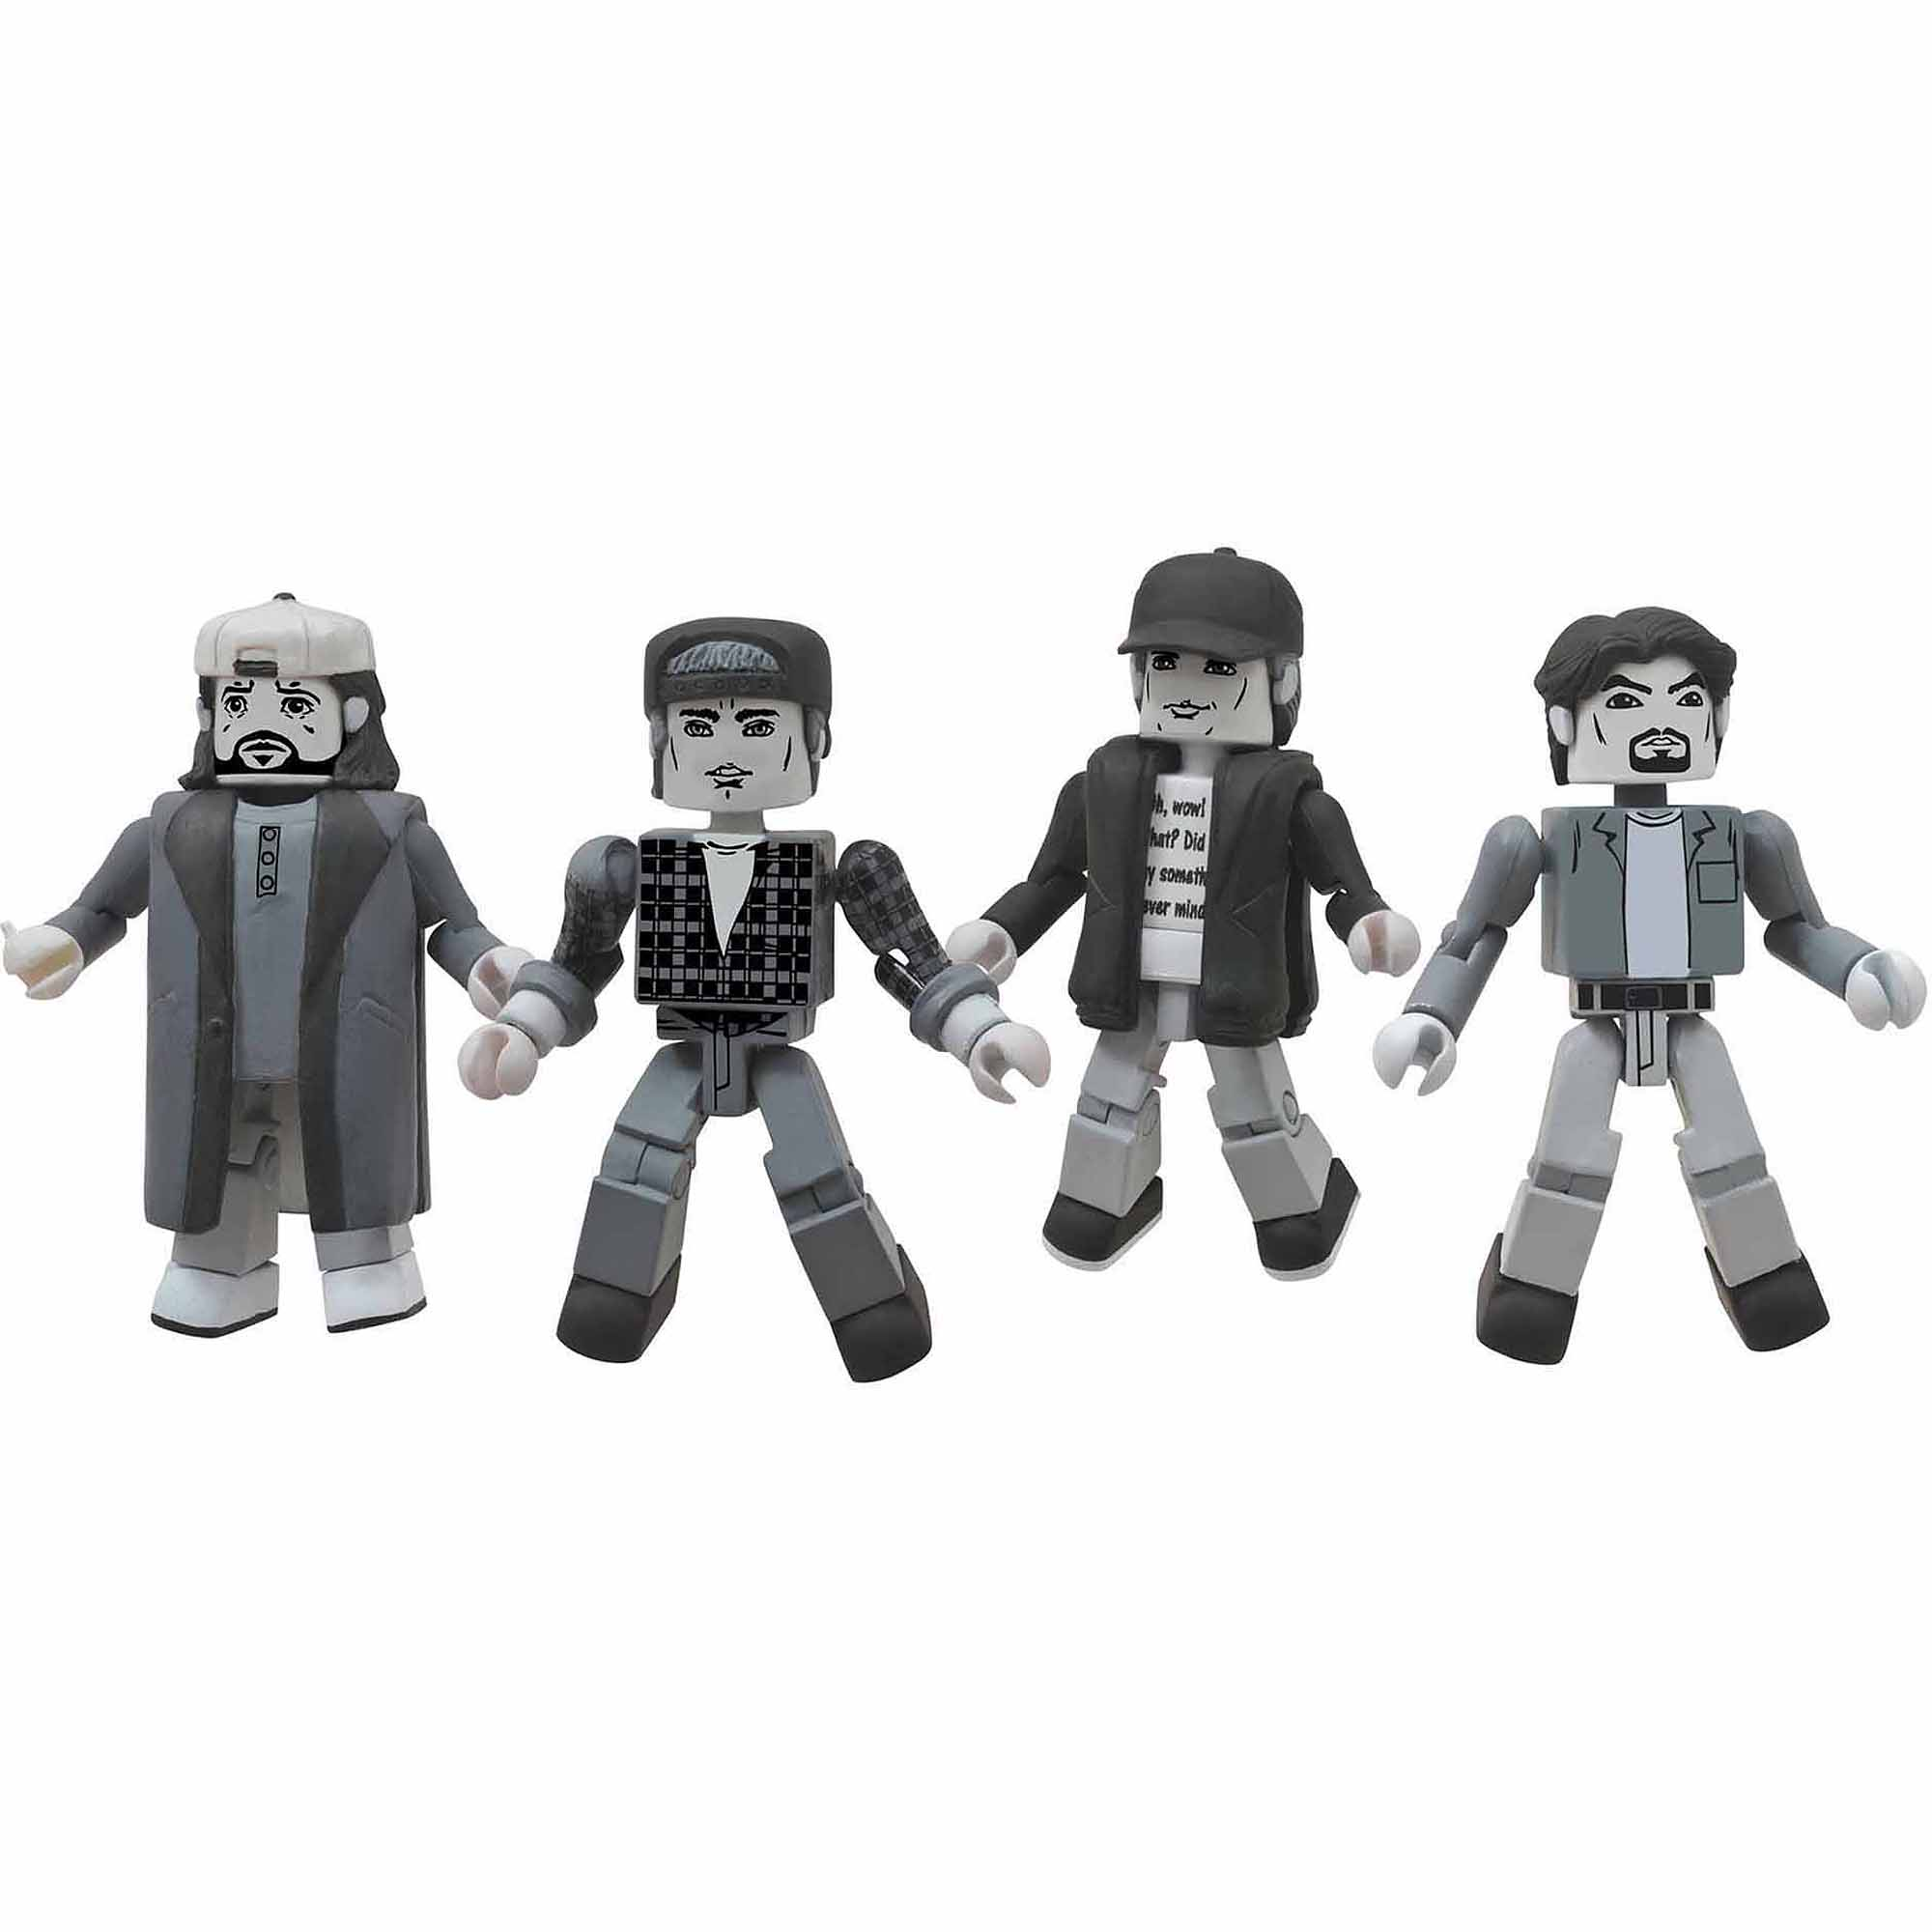 Diamond Select Toys Clerks Minimates 20th Anniversary B&W Box Set